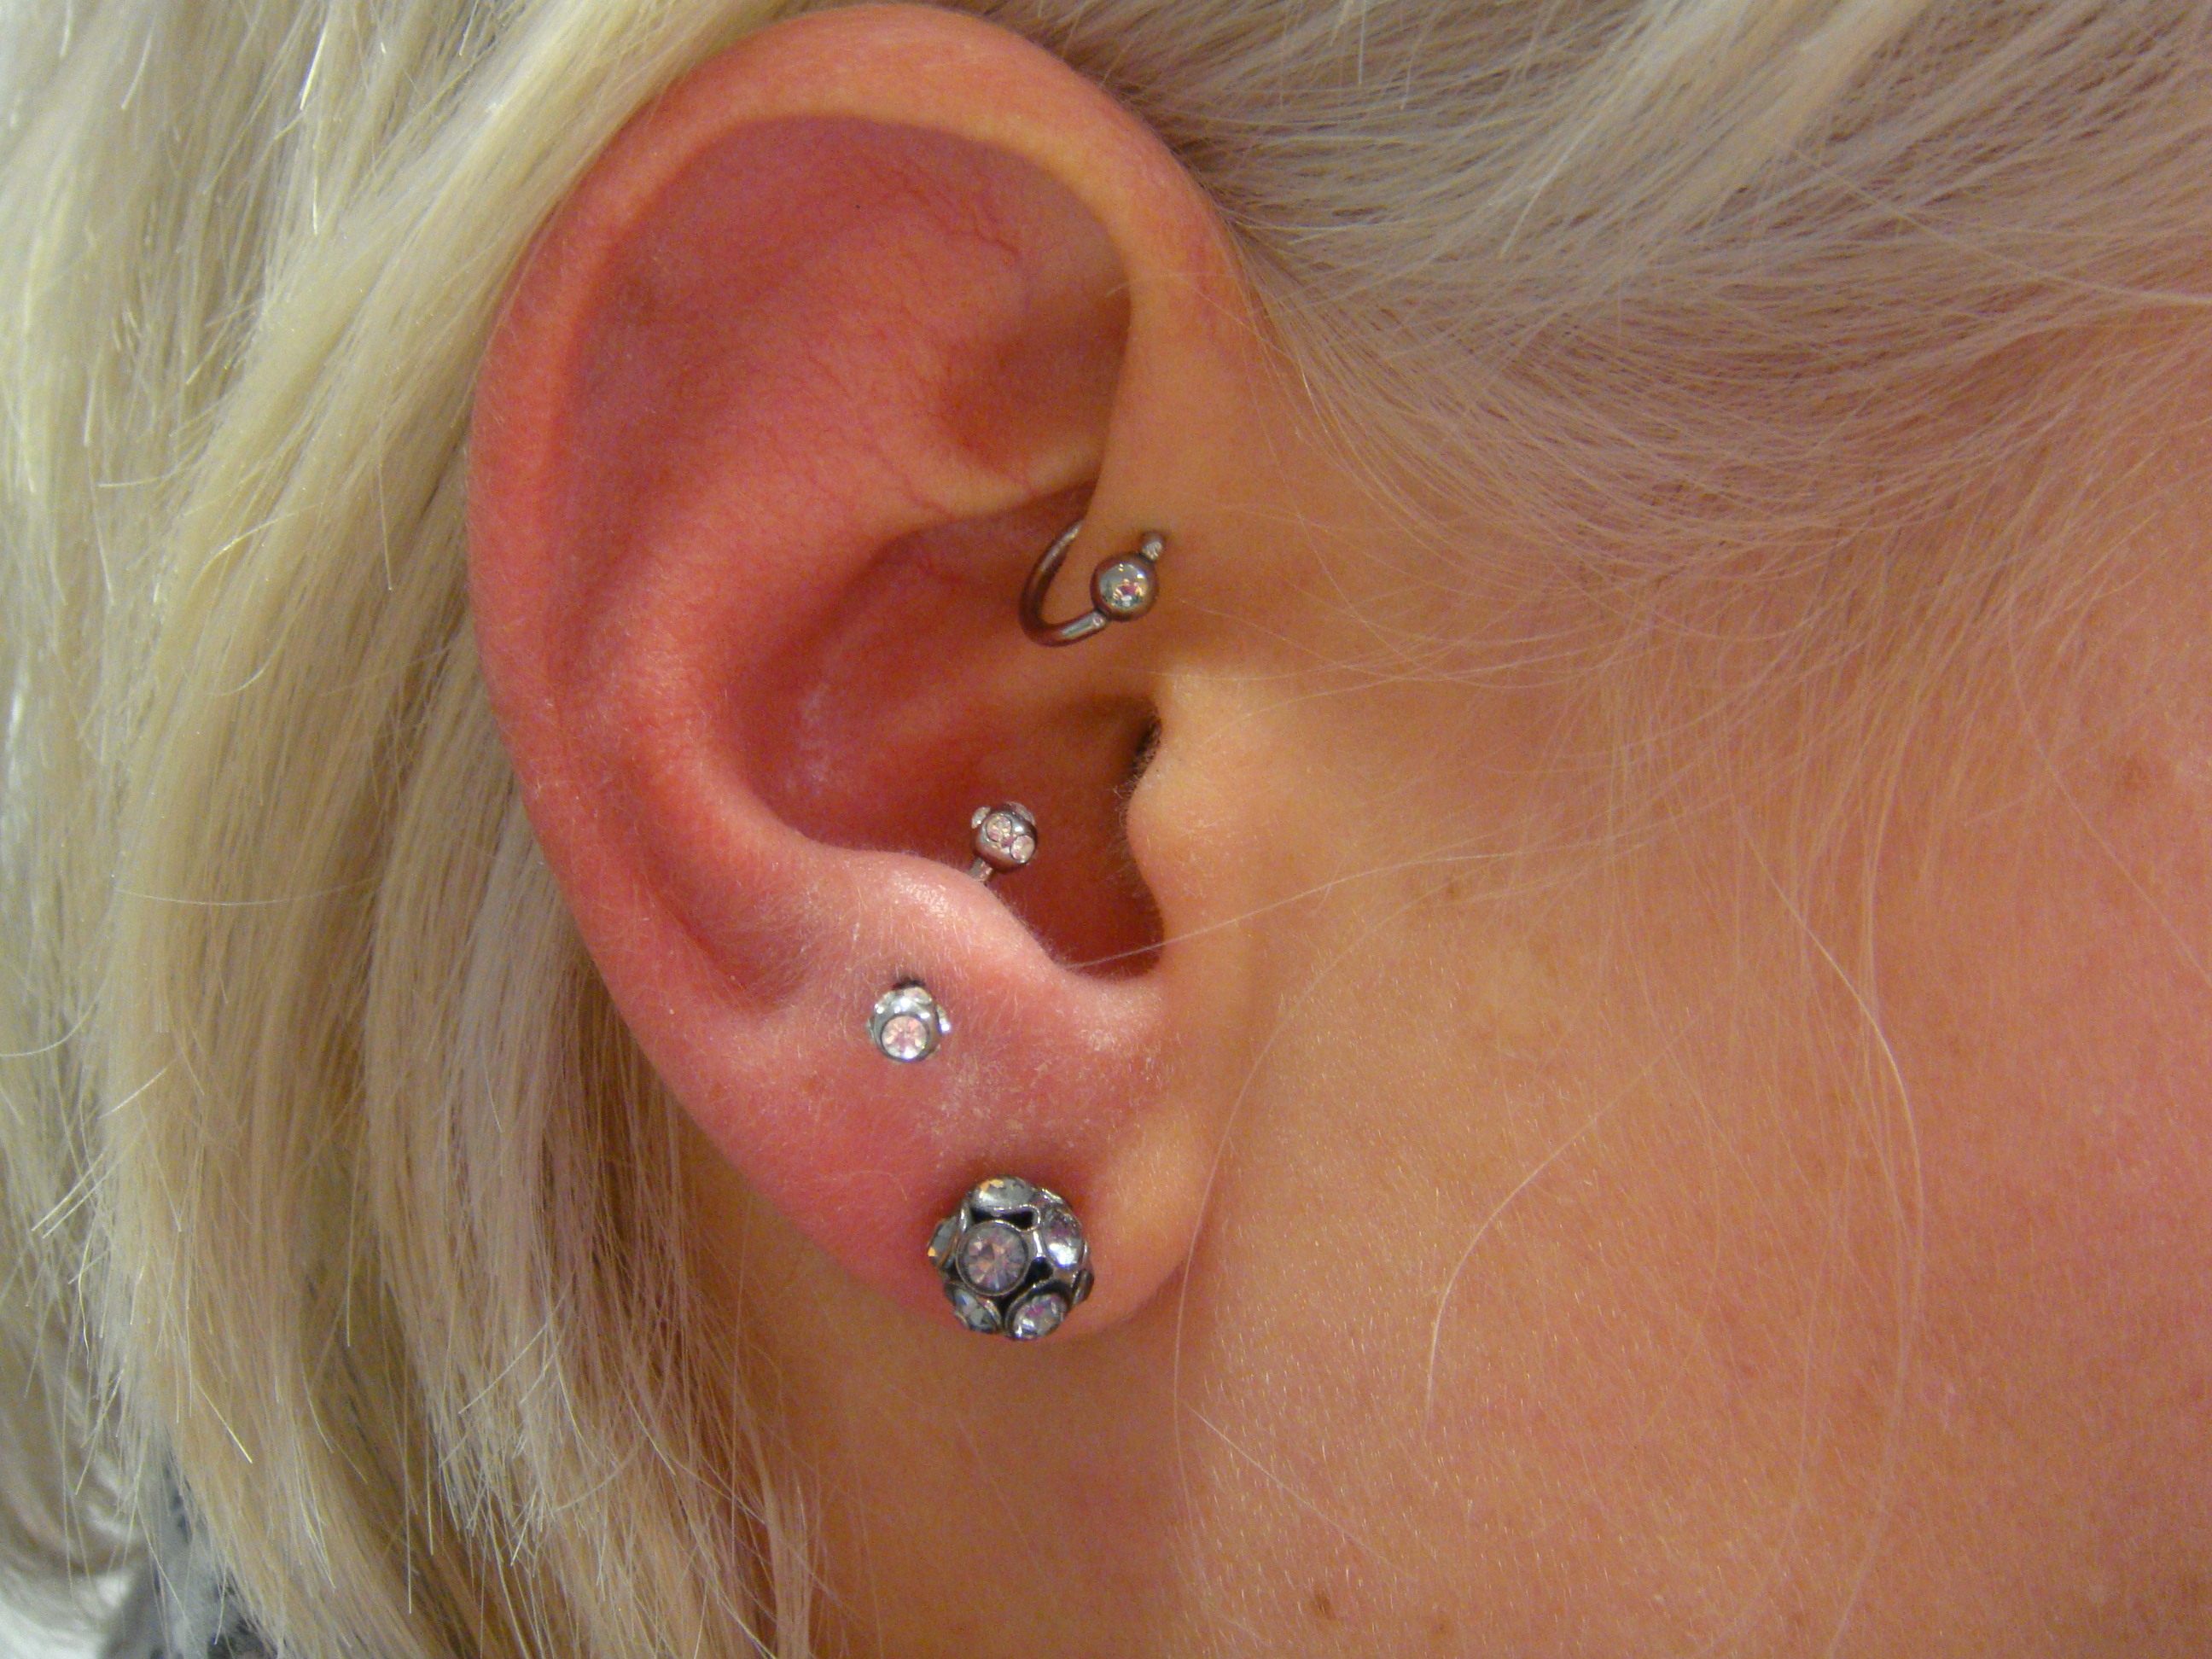 Piercing; Ohr; Antitragus; Forward Helix